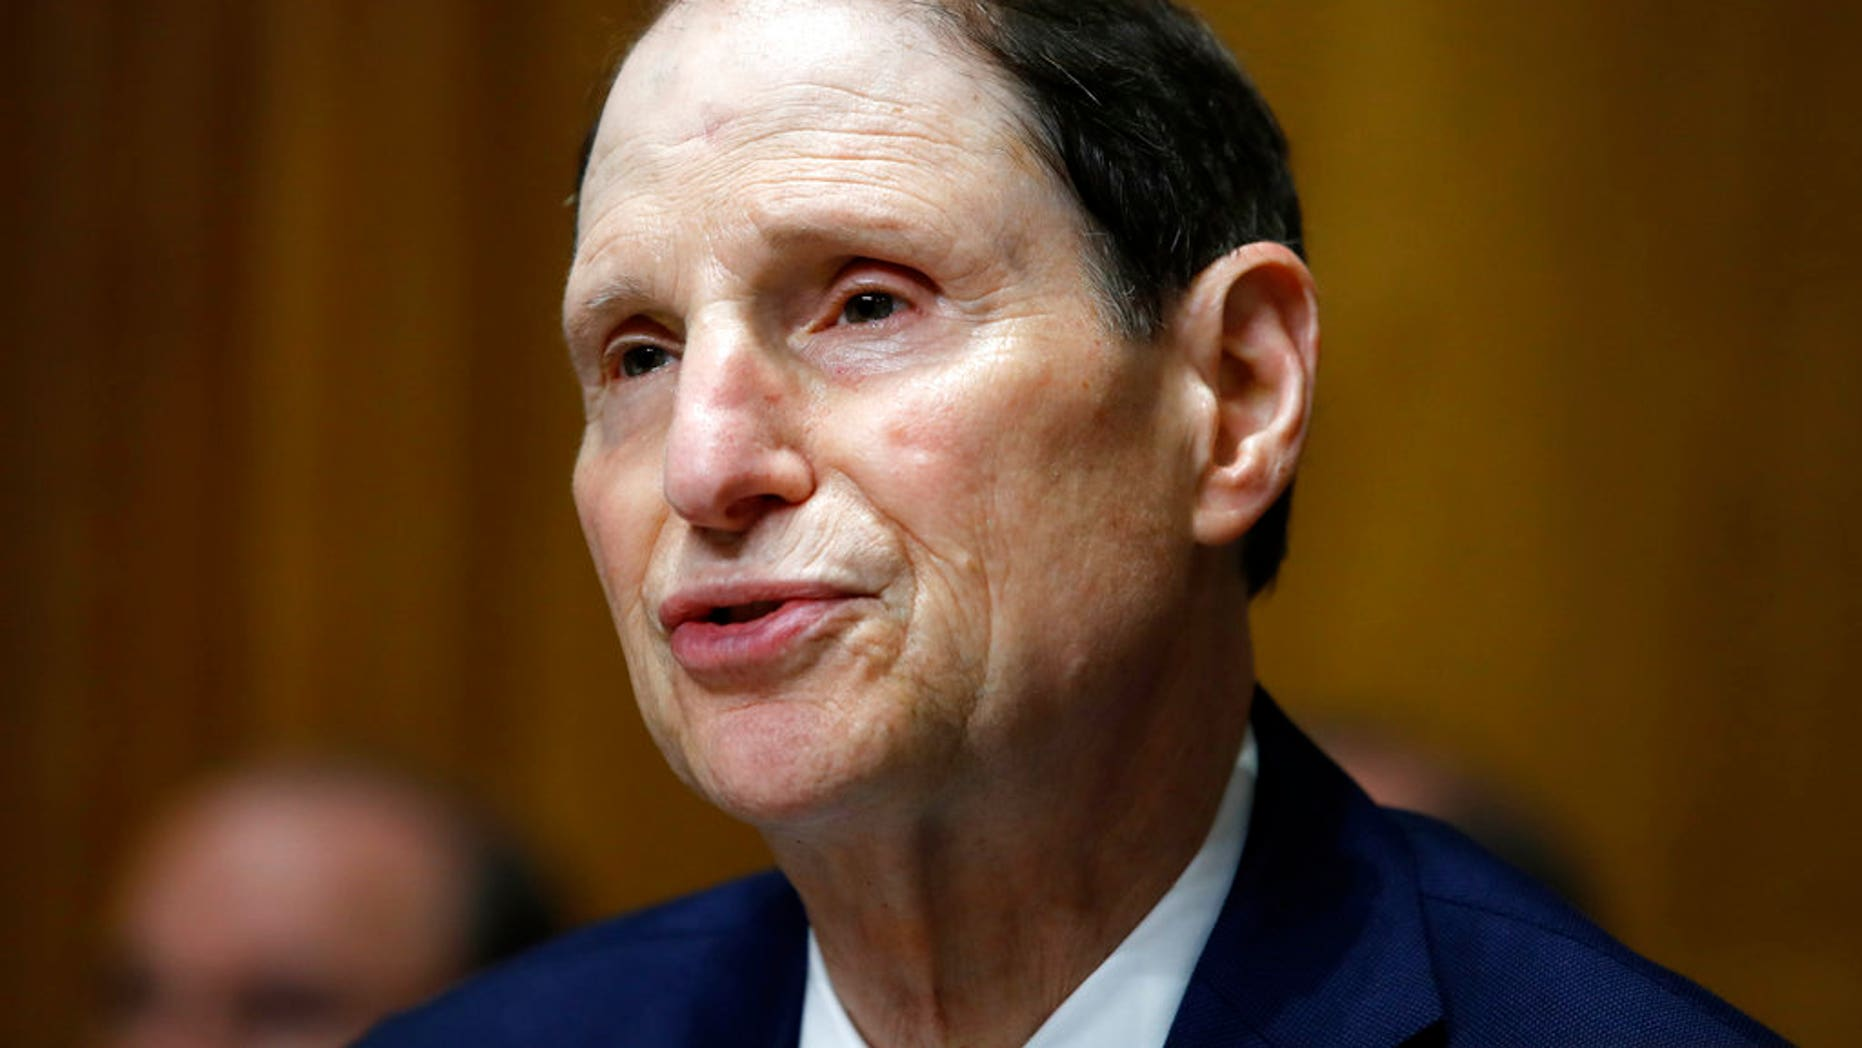 Sen. Ron Wyden, D-Ore., said in a letter to U.S. Senate leaders that hackers working on behalf of a foreign government are still targeting the personal account of senators and their aides.